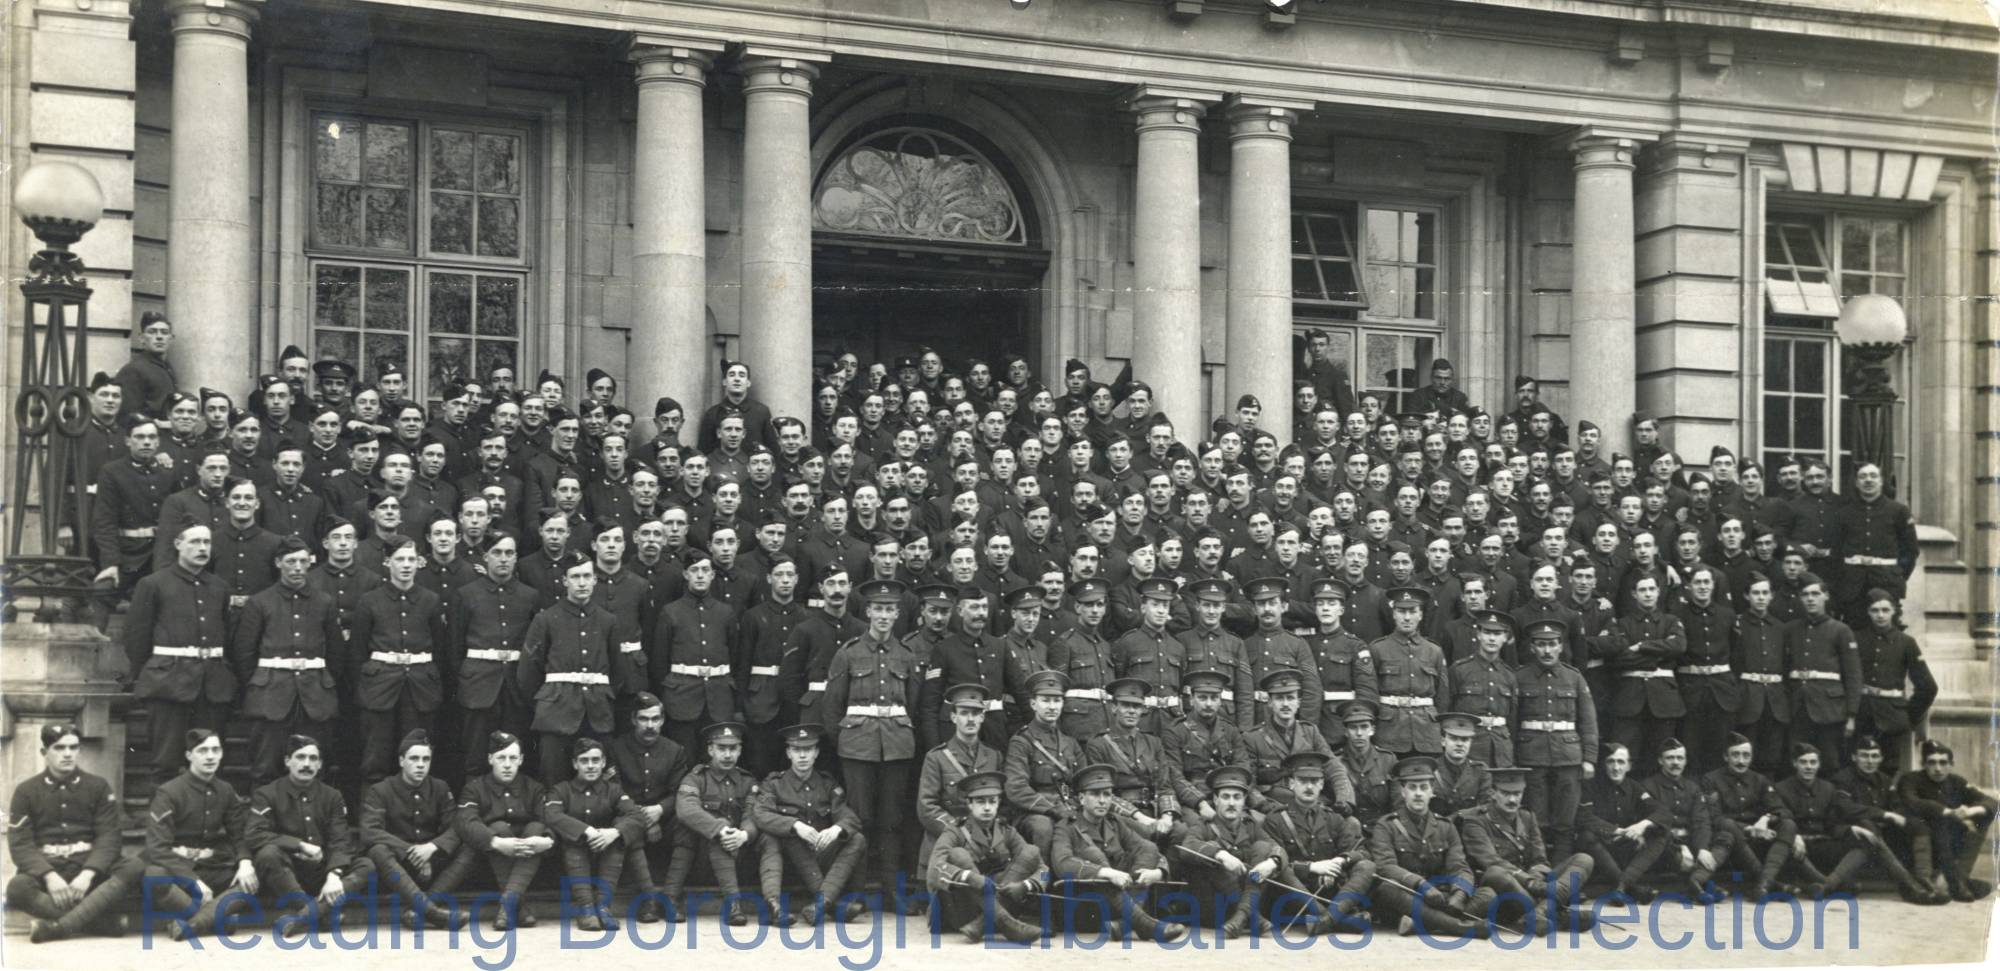 """C"" Company, 7th Battalion, Royal Berkshire Regiment, Shire Hall, The Forbury, Reading, 1915."